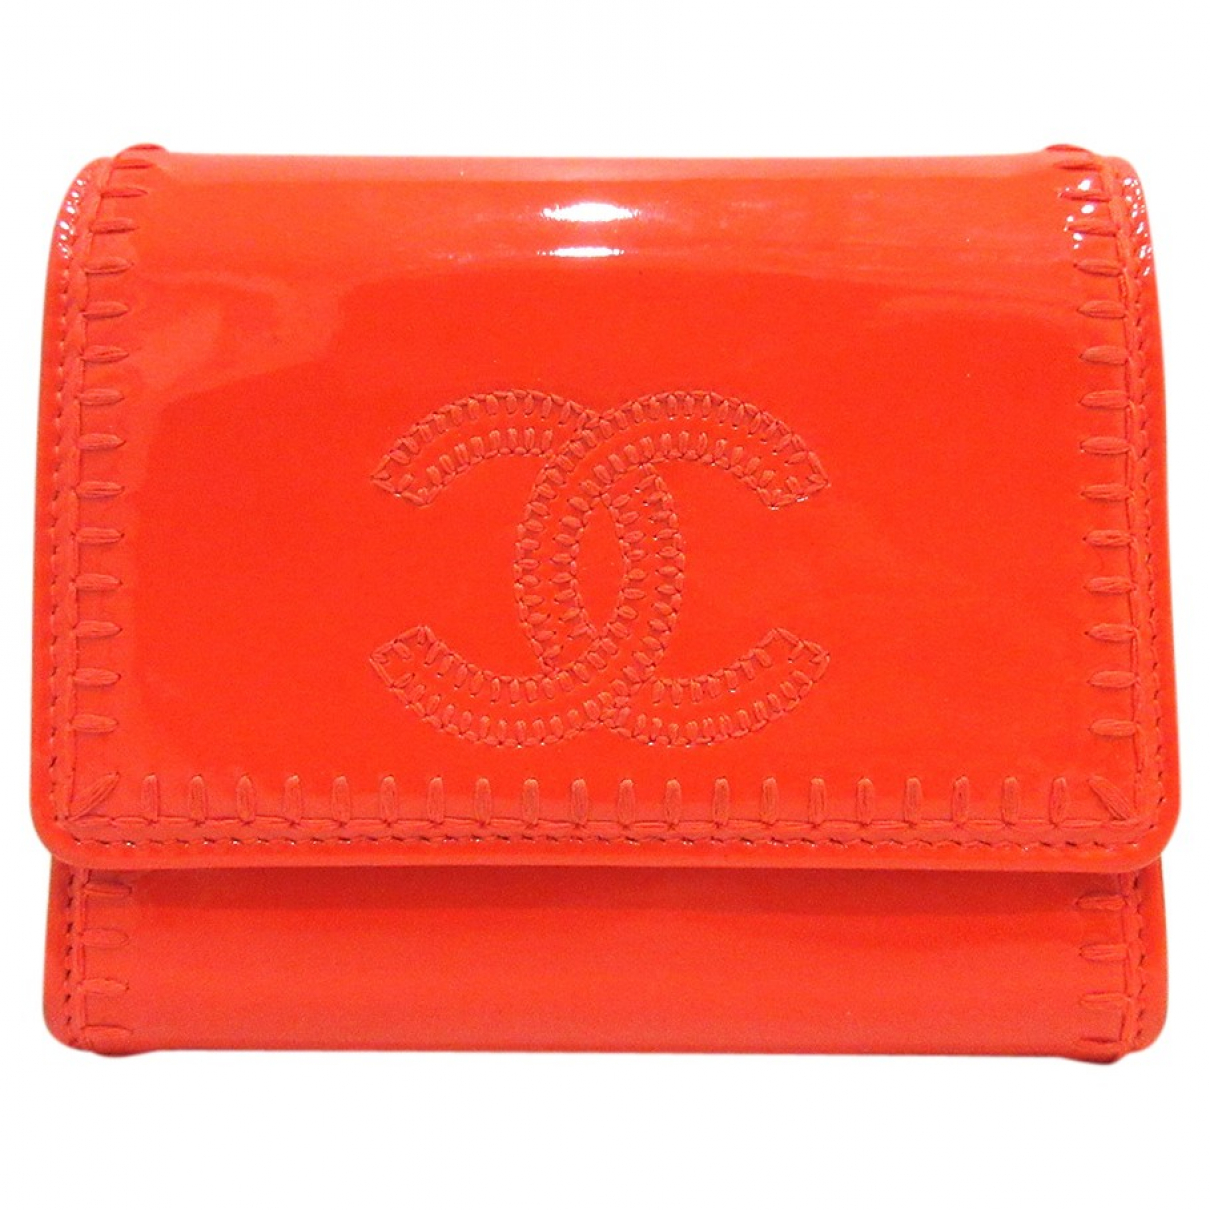 Chanel \N Portemonnaie in  Orange Lackleder